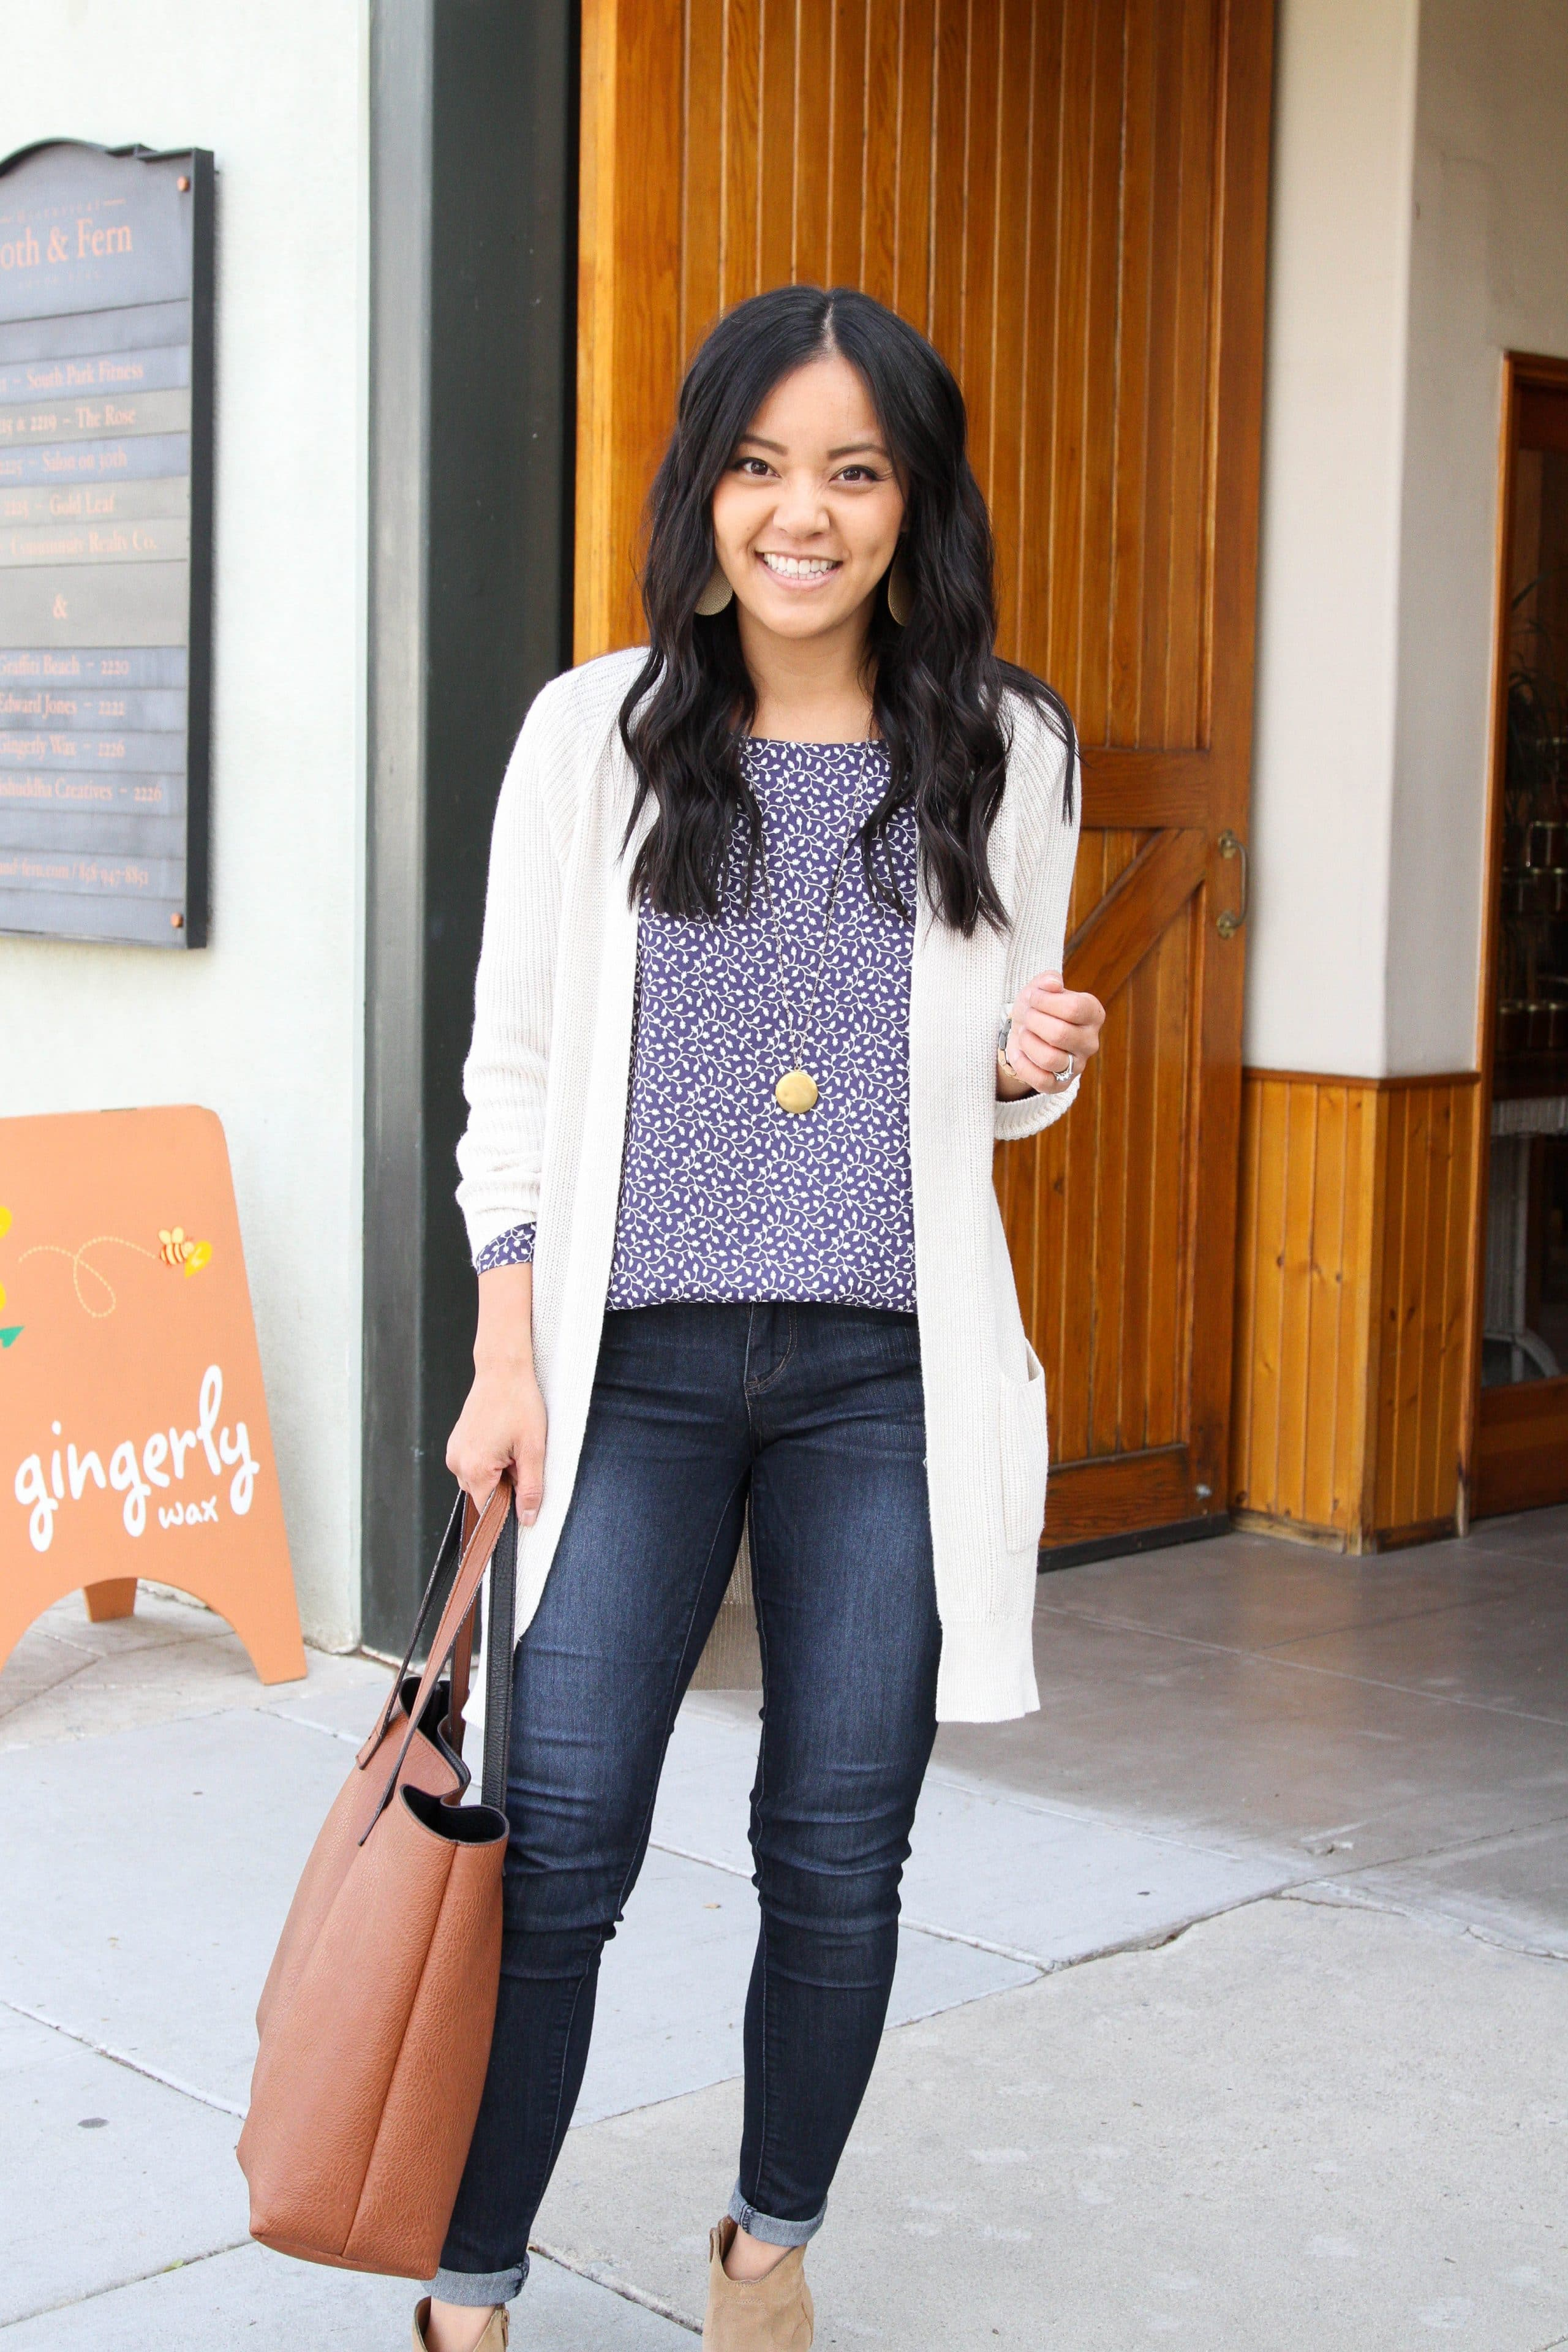 navy floral top + white sweater + skinny jeans + taupe booties + cognac tote